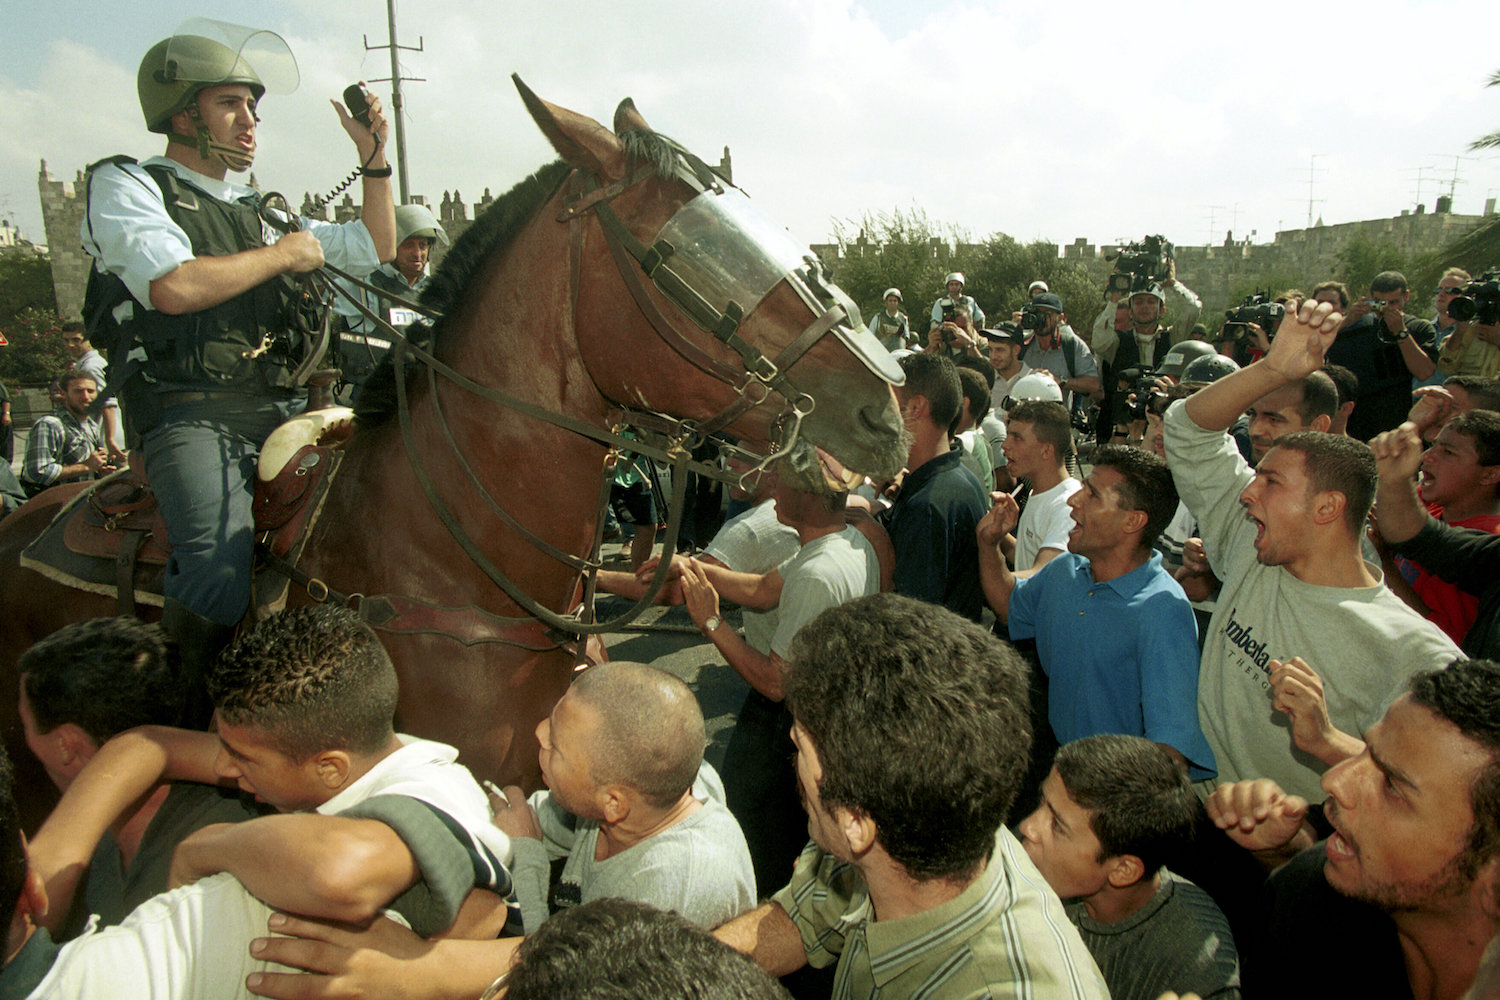 An Israeli police on horseback enters a crowd of Palestinians during clashes in the first days of the Second Intifada, October 20, 2000. (Flash90)